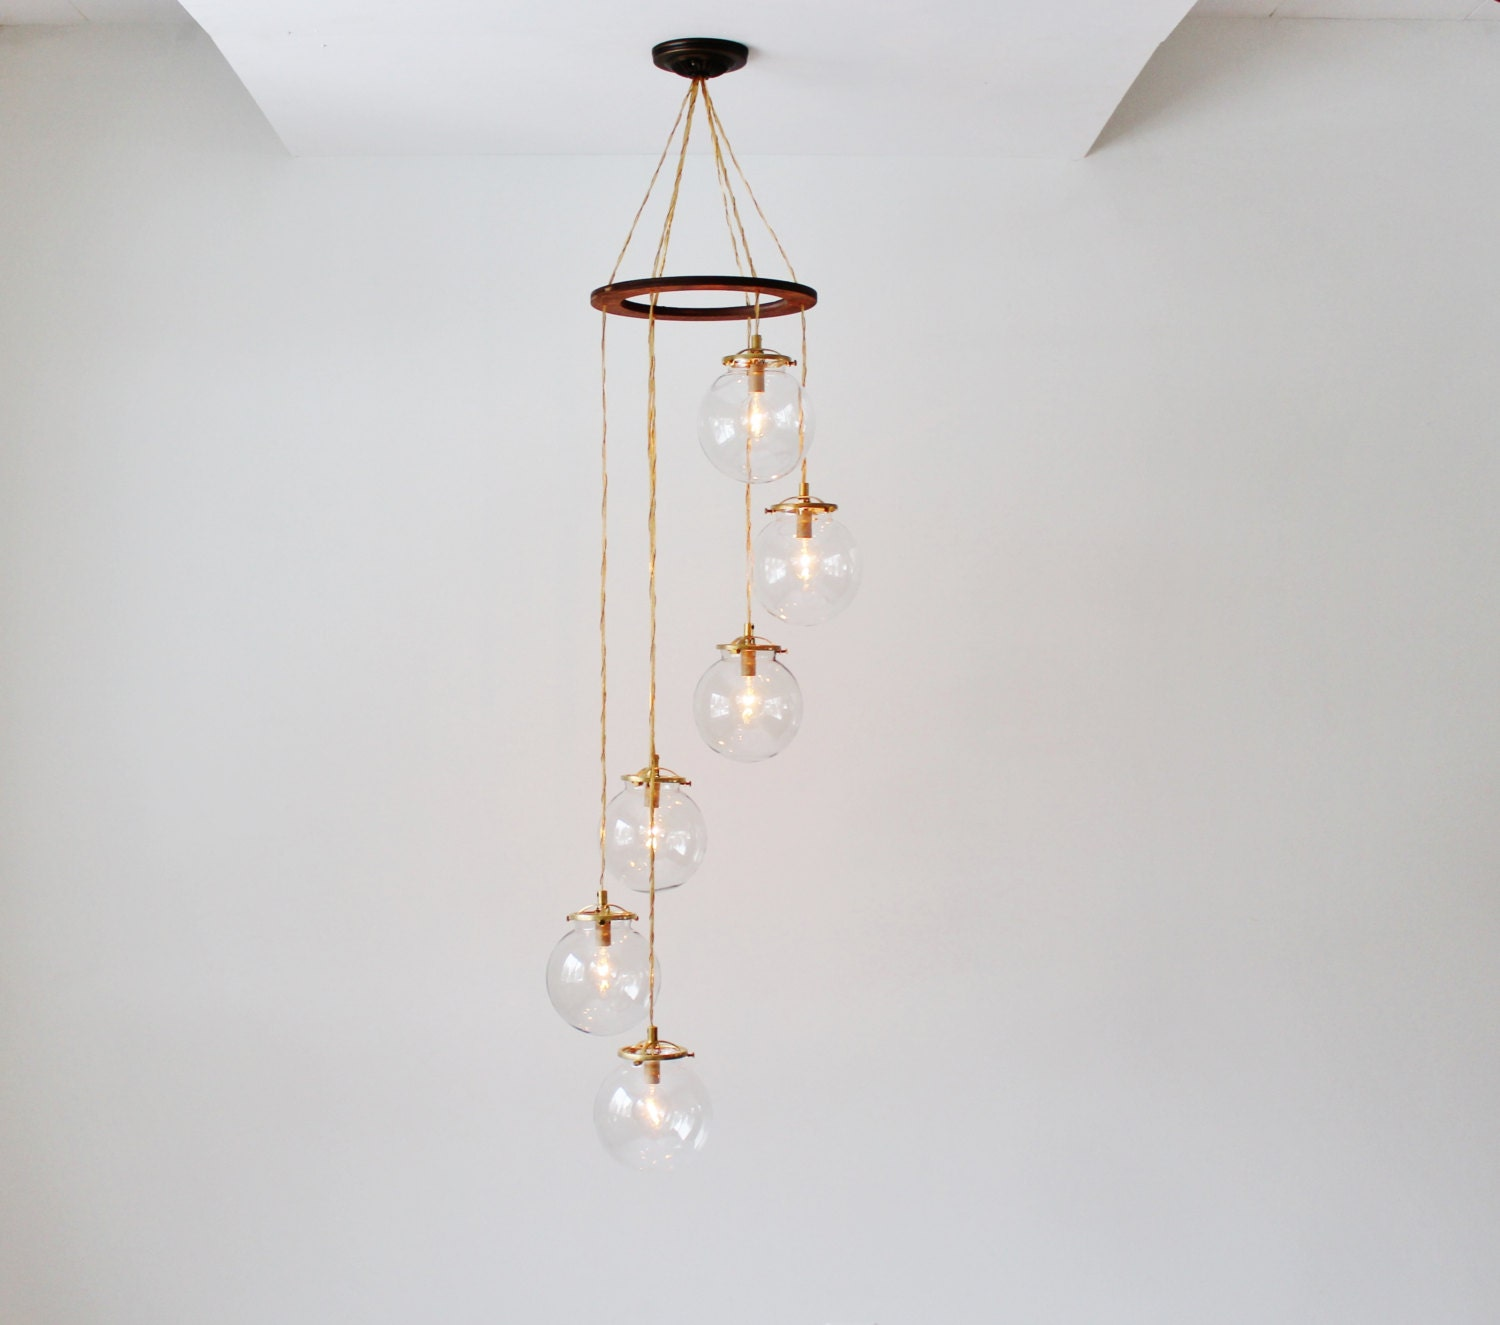 Globe chandelier spiral hanging chandelier light fixture 6 - Lighting and chandeliers ...